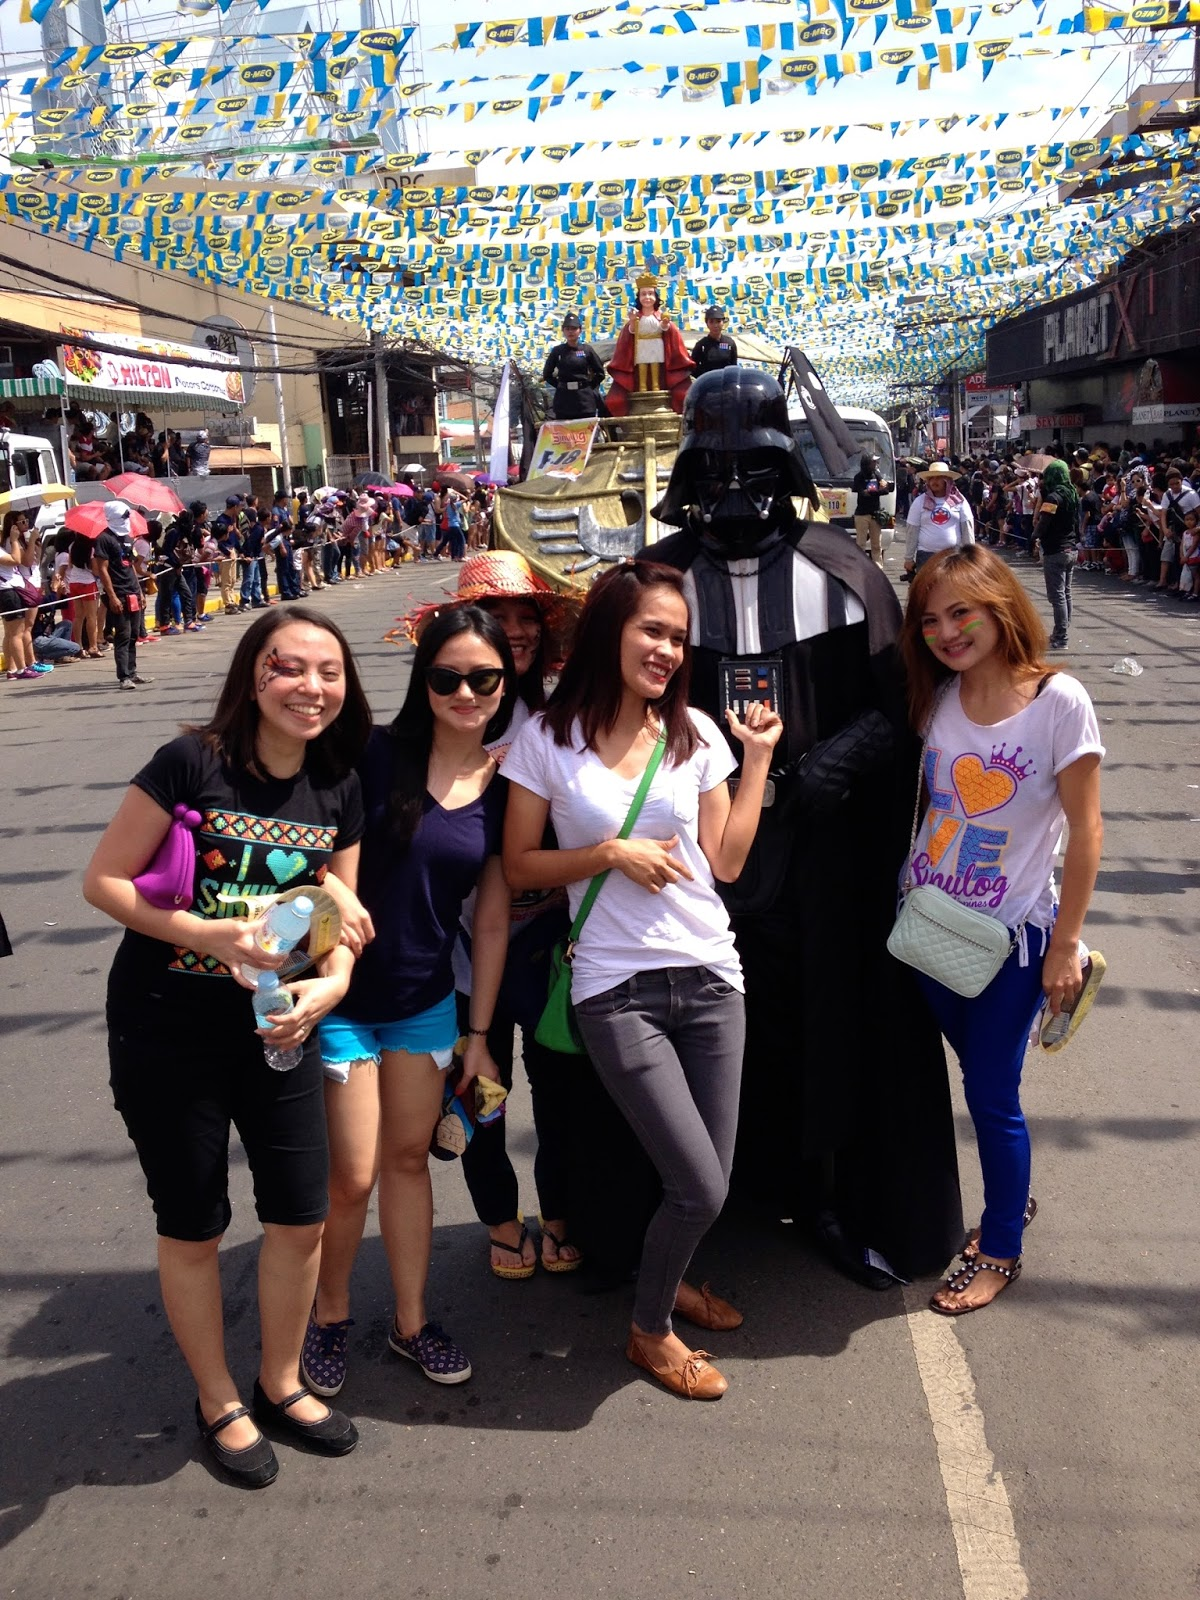 darth vader at the Sinulog 2015 parade